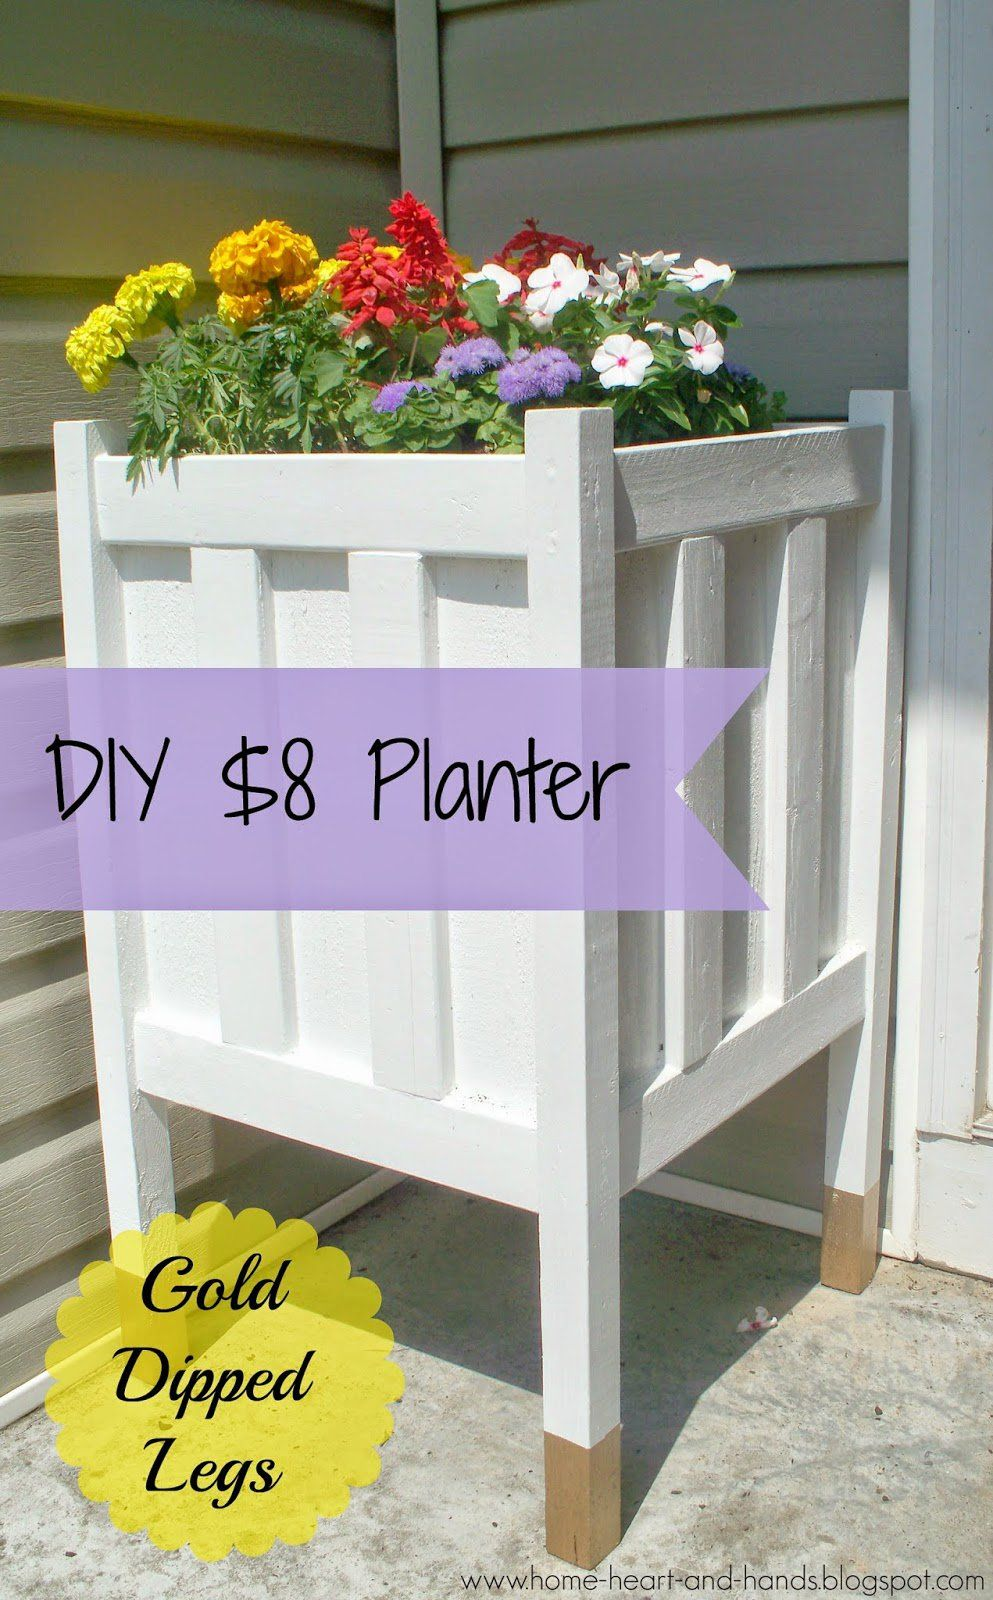 19 backyard diy spruce ups on a budget backyard budgeting and yards